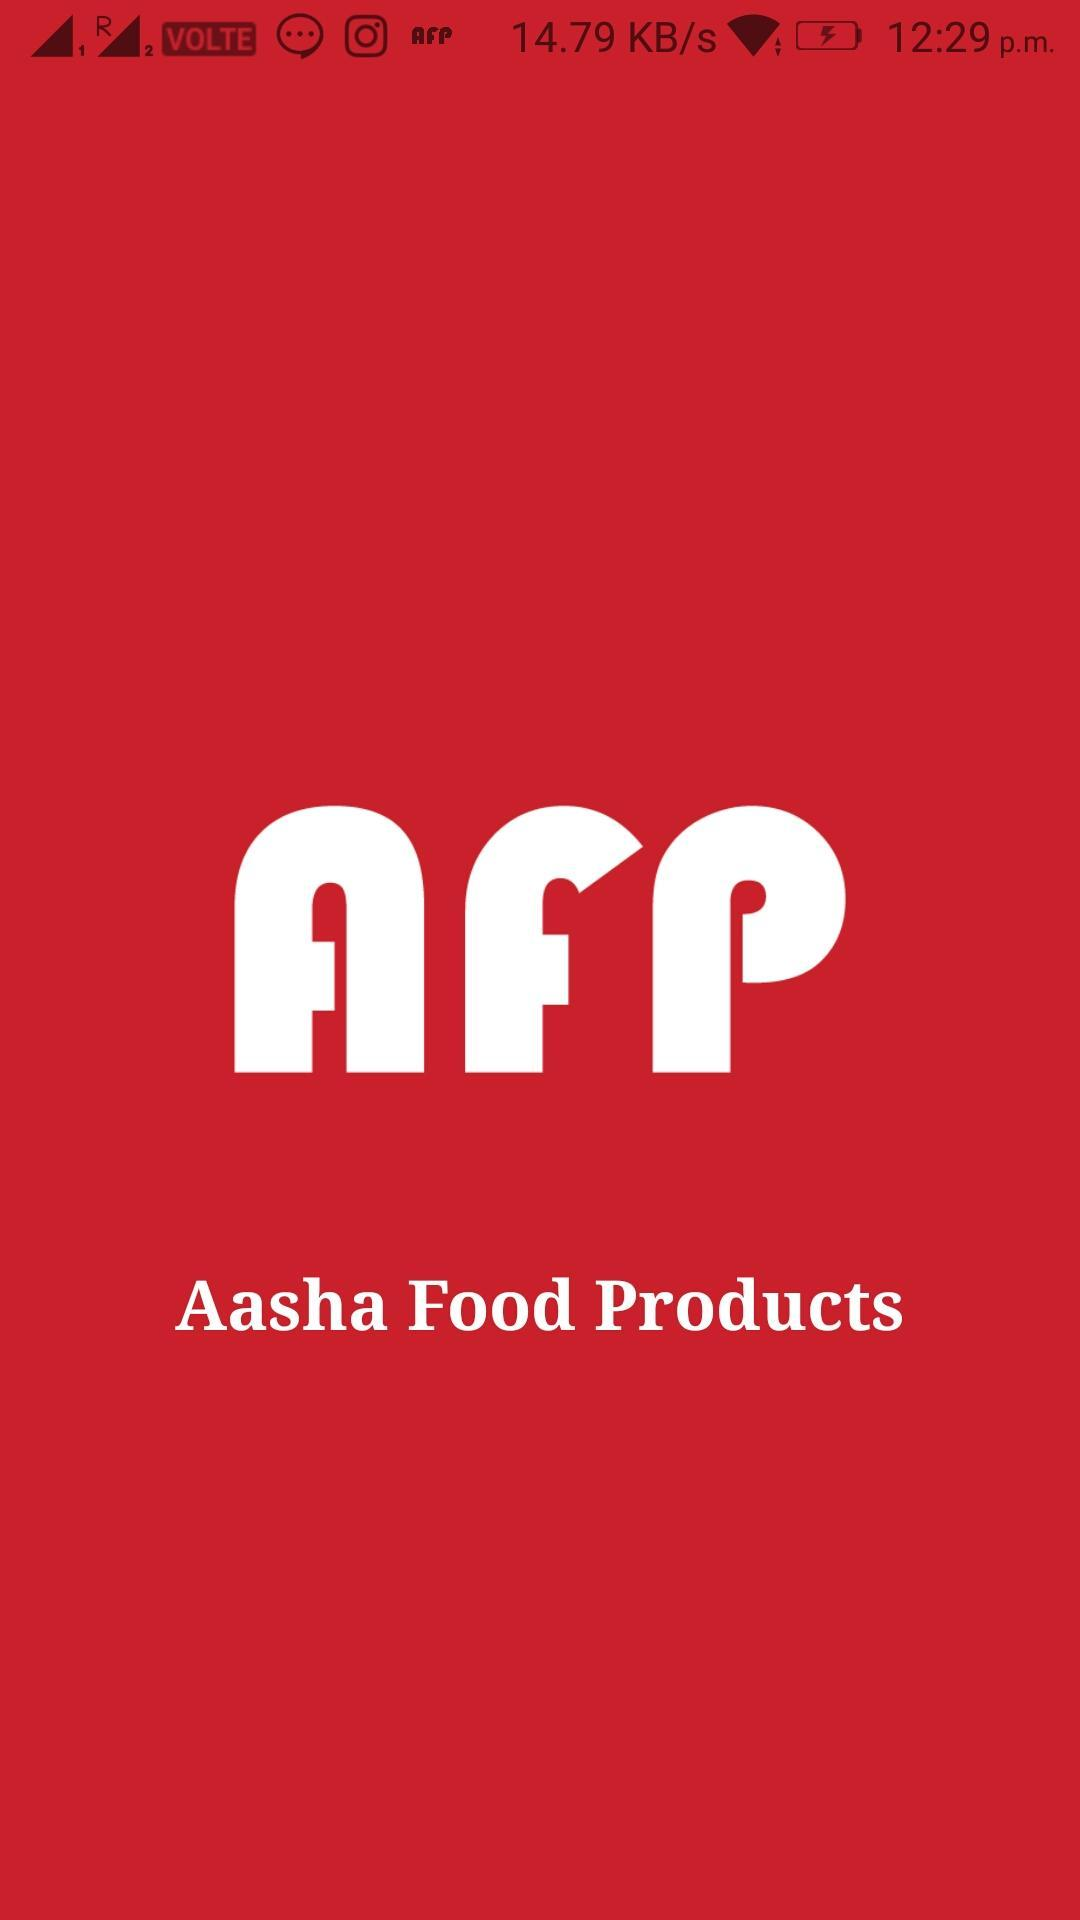 Aasha Food Products (AFP) for Android - APK Download